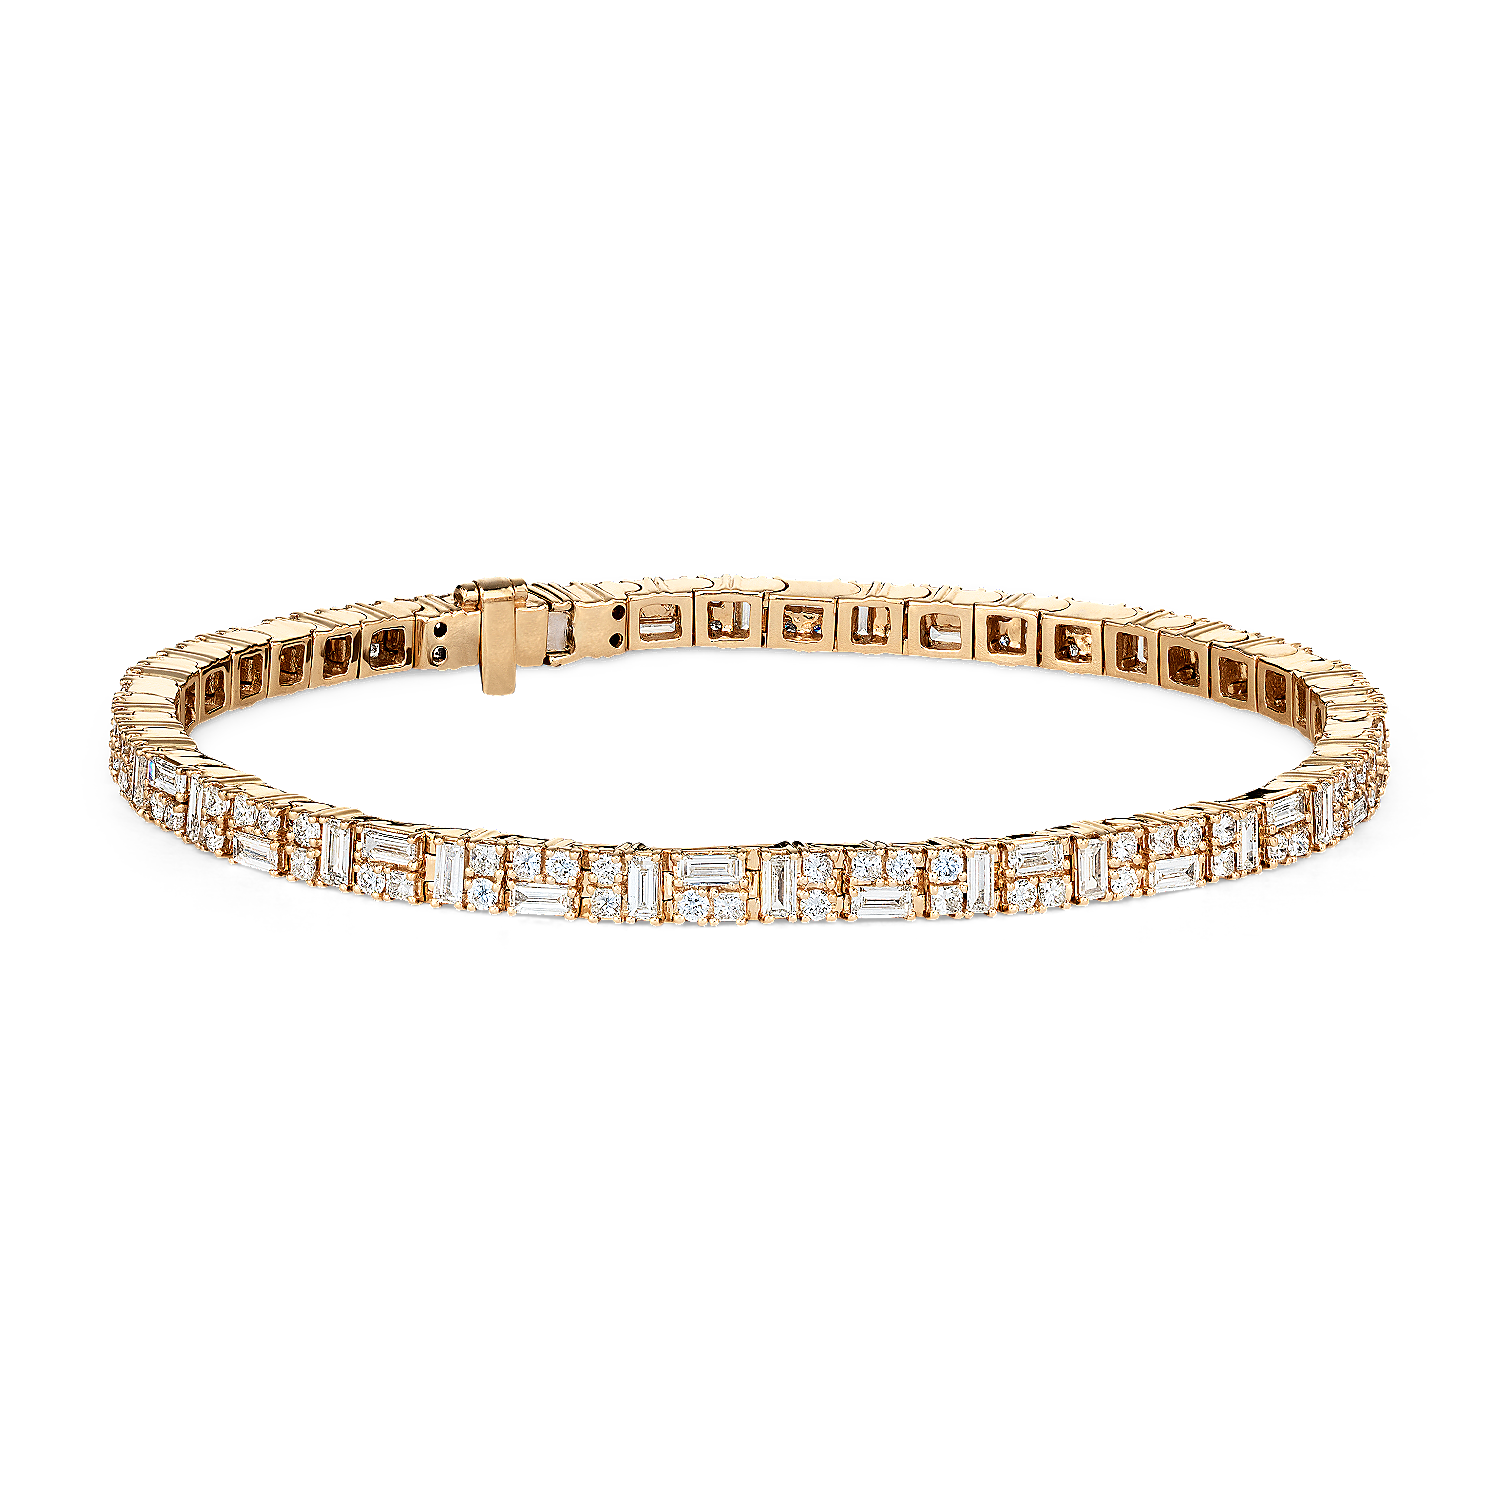 57604_Colin Cowie Dot Dash Tennis Bracelet Yellow Gold.jpg